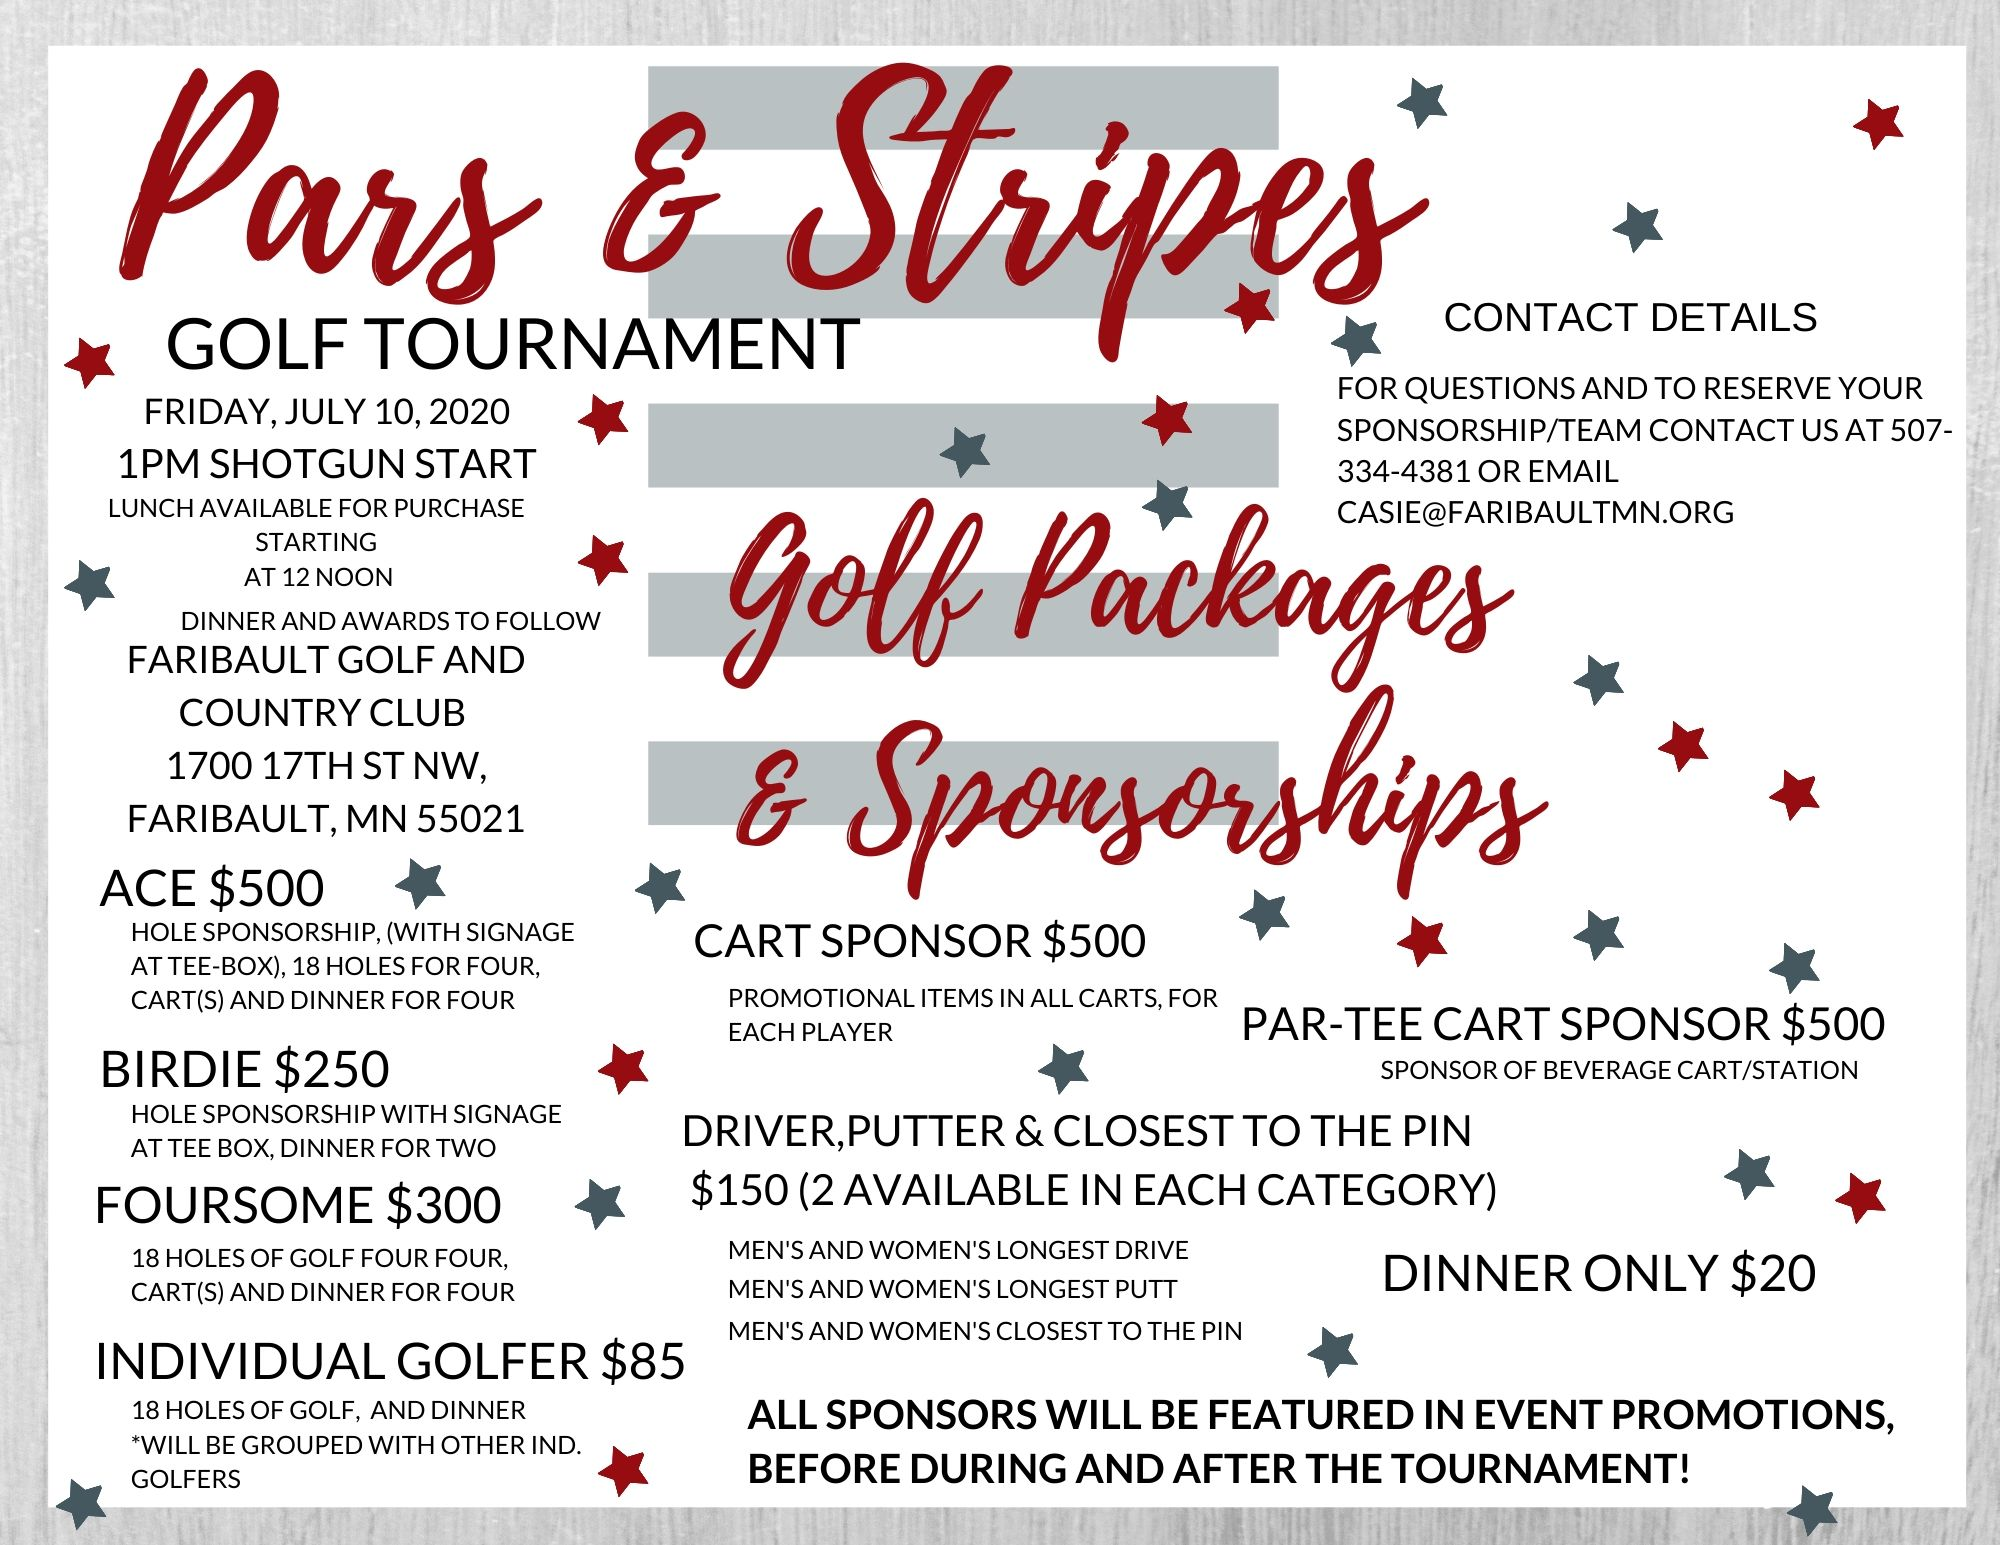 Golf Packages and sponsorship